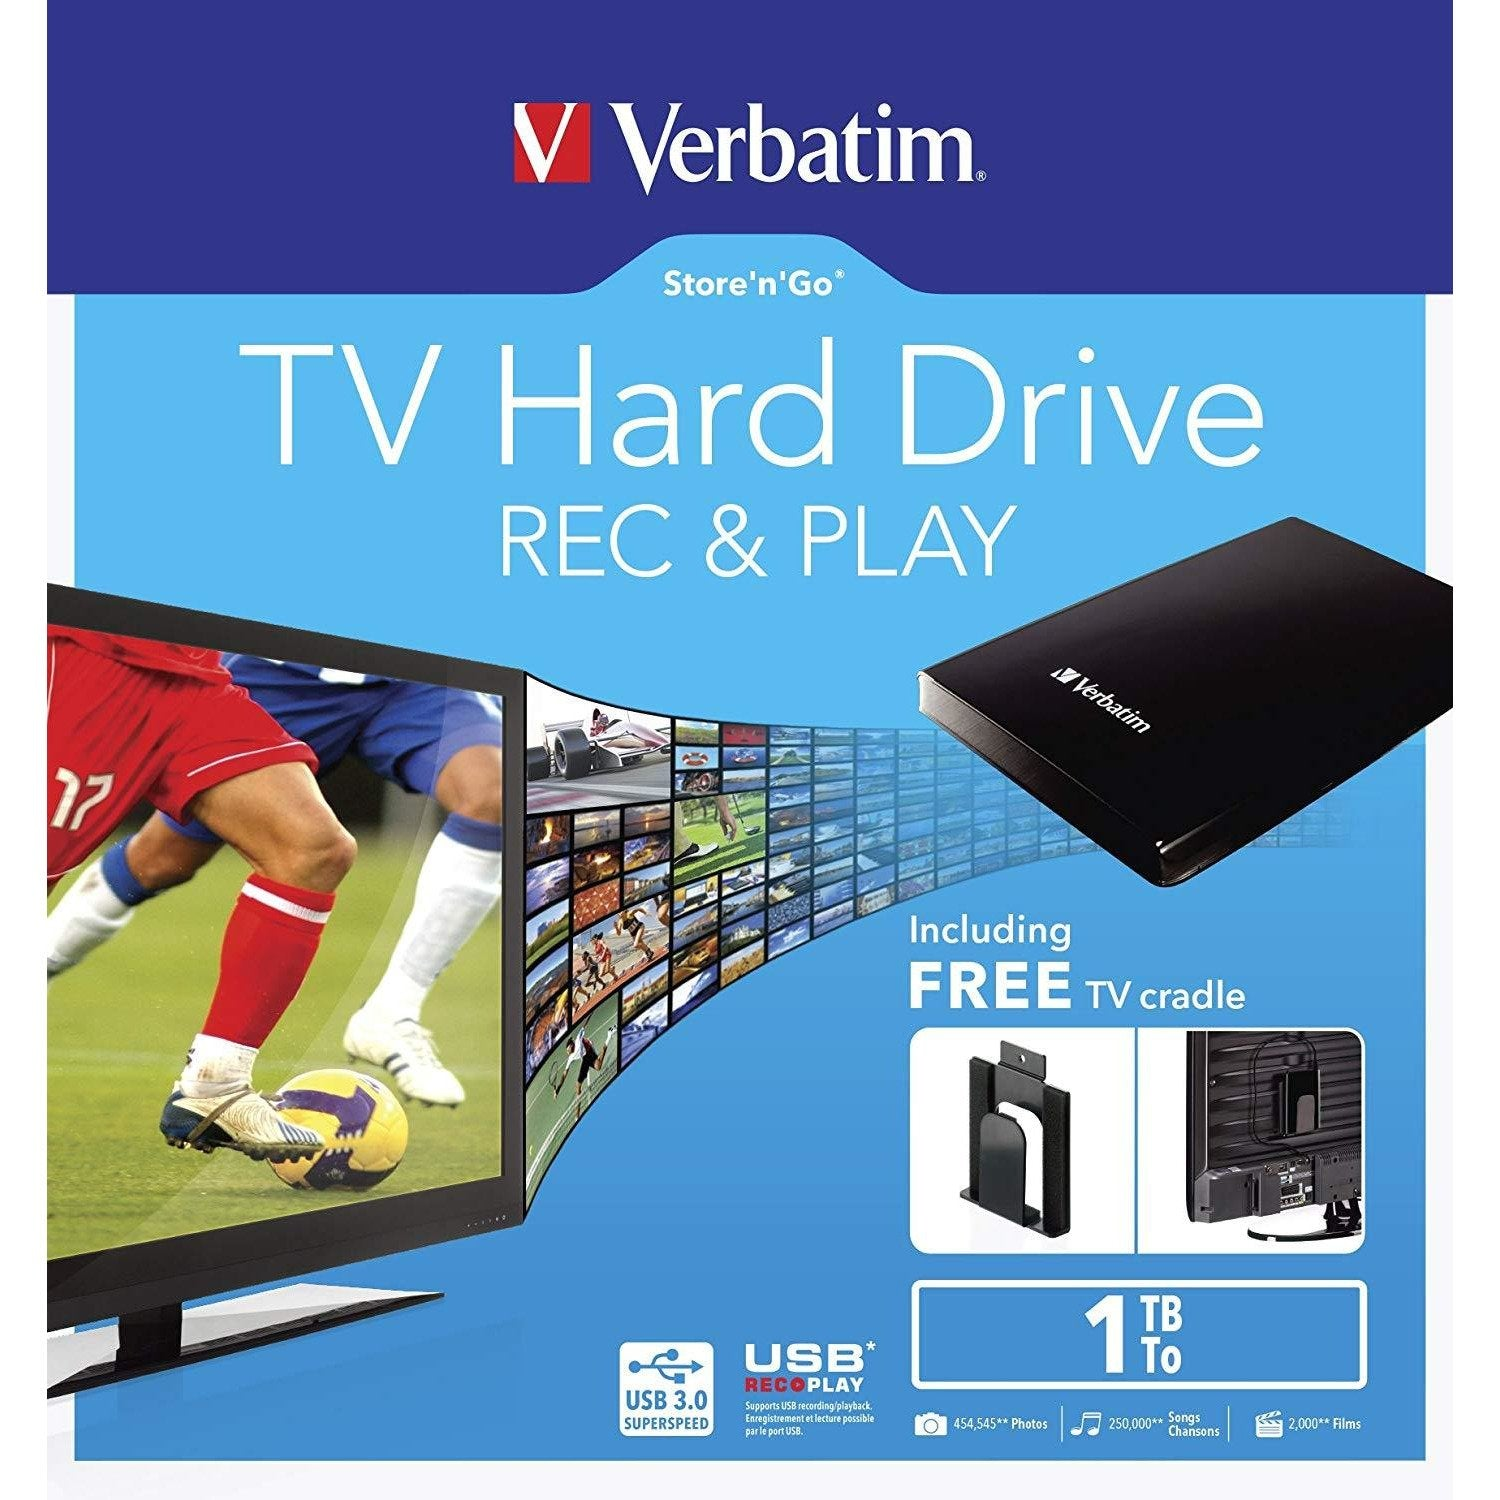 Verbatim 1TB TV Hard Drive